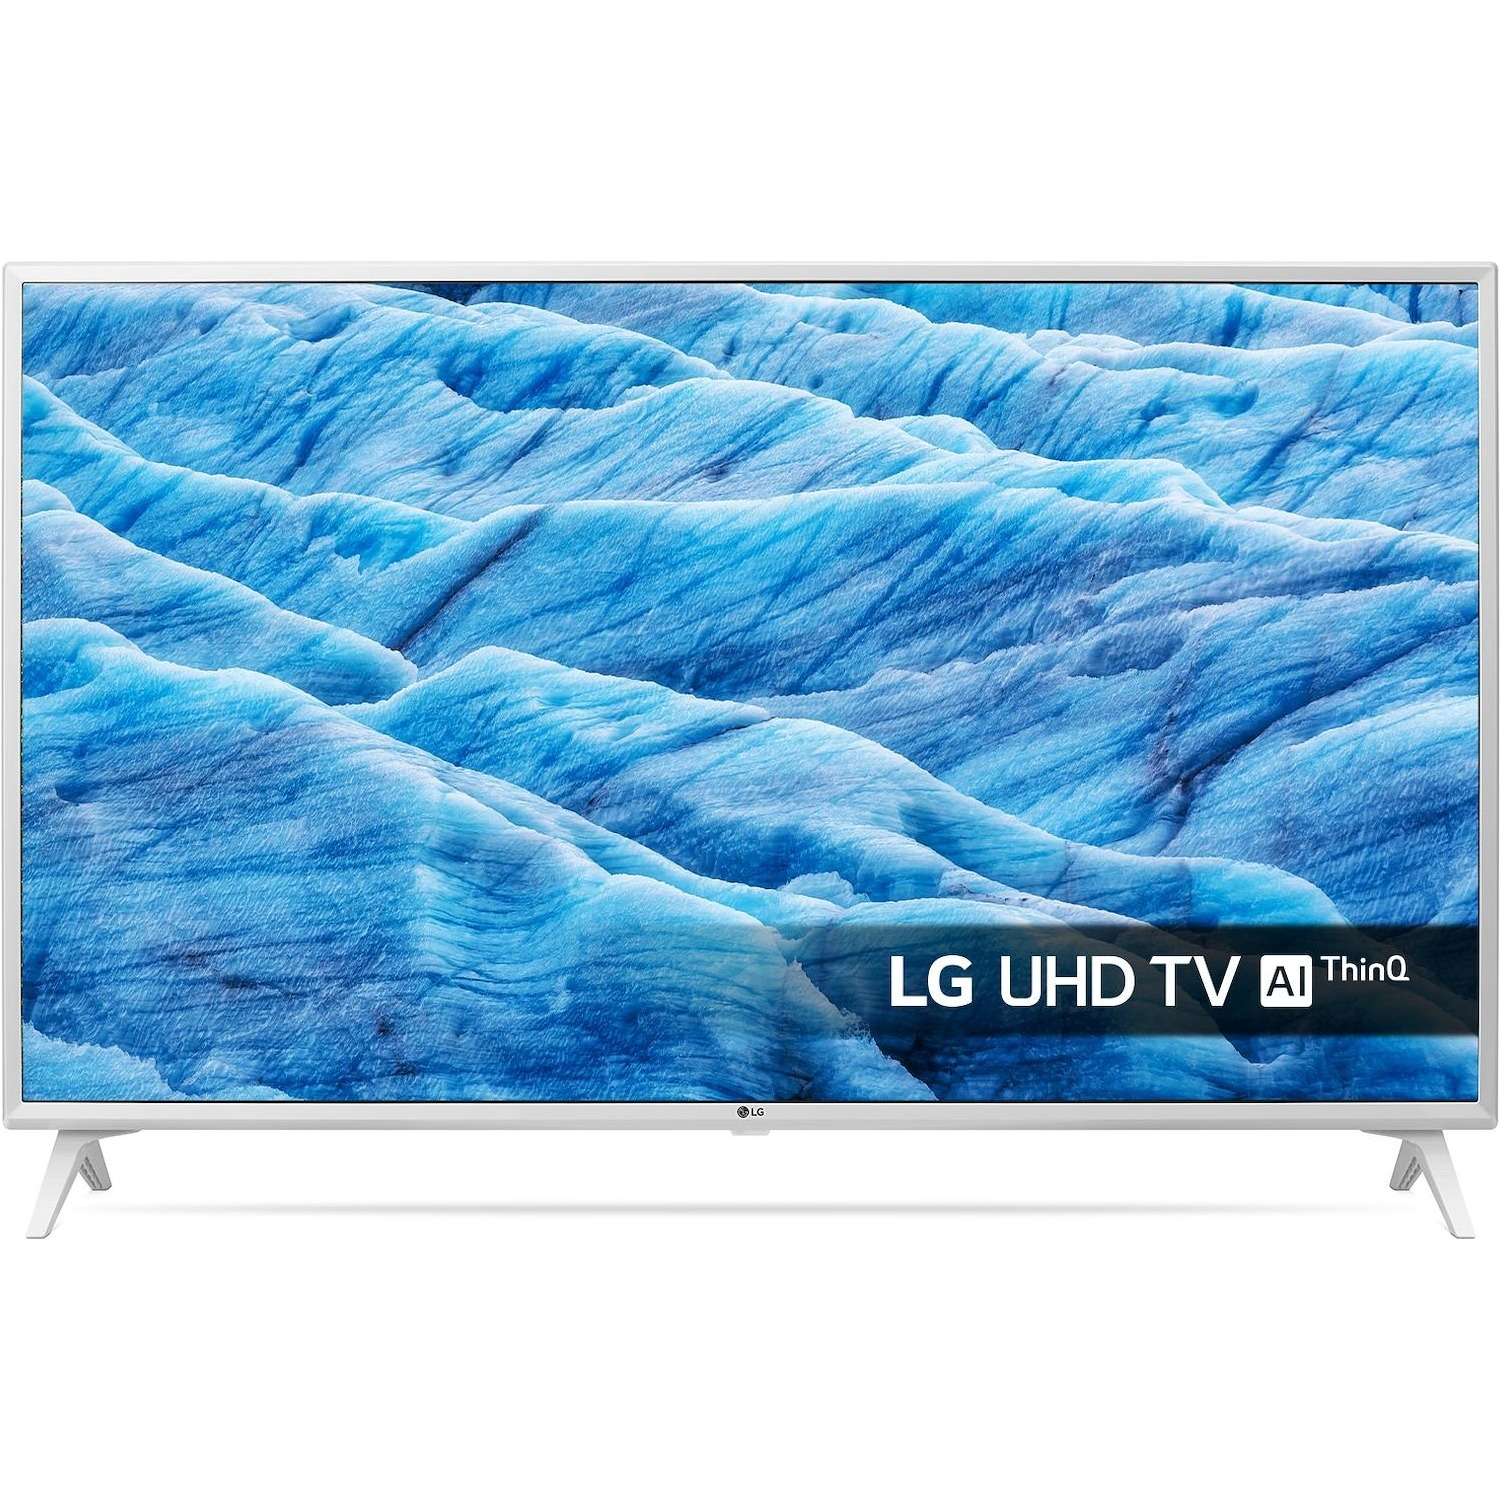 Immagine per TV LED Smart 4K UHD LG 43UM7390P da DIMOStore